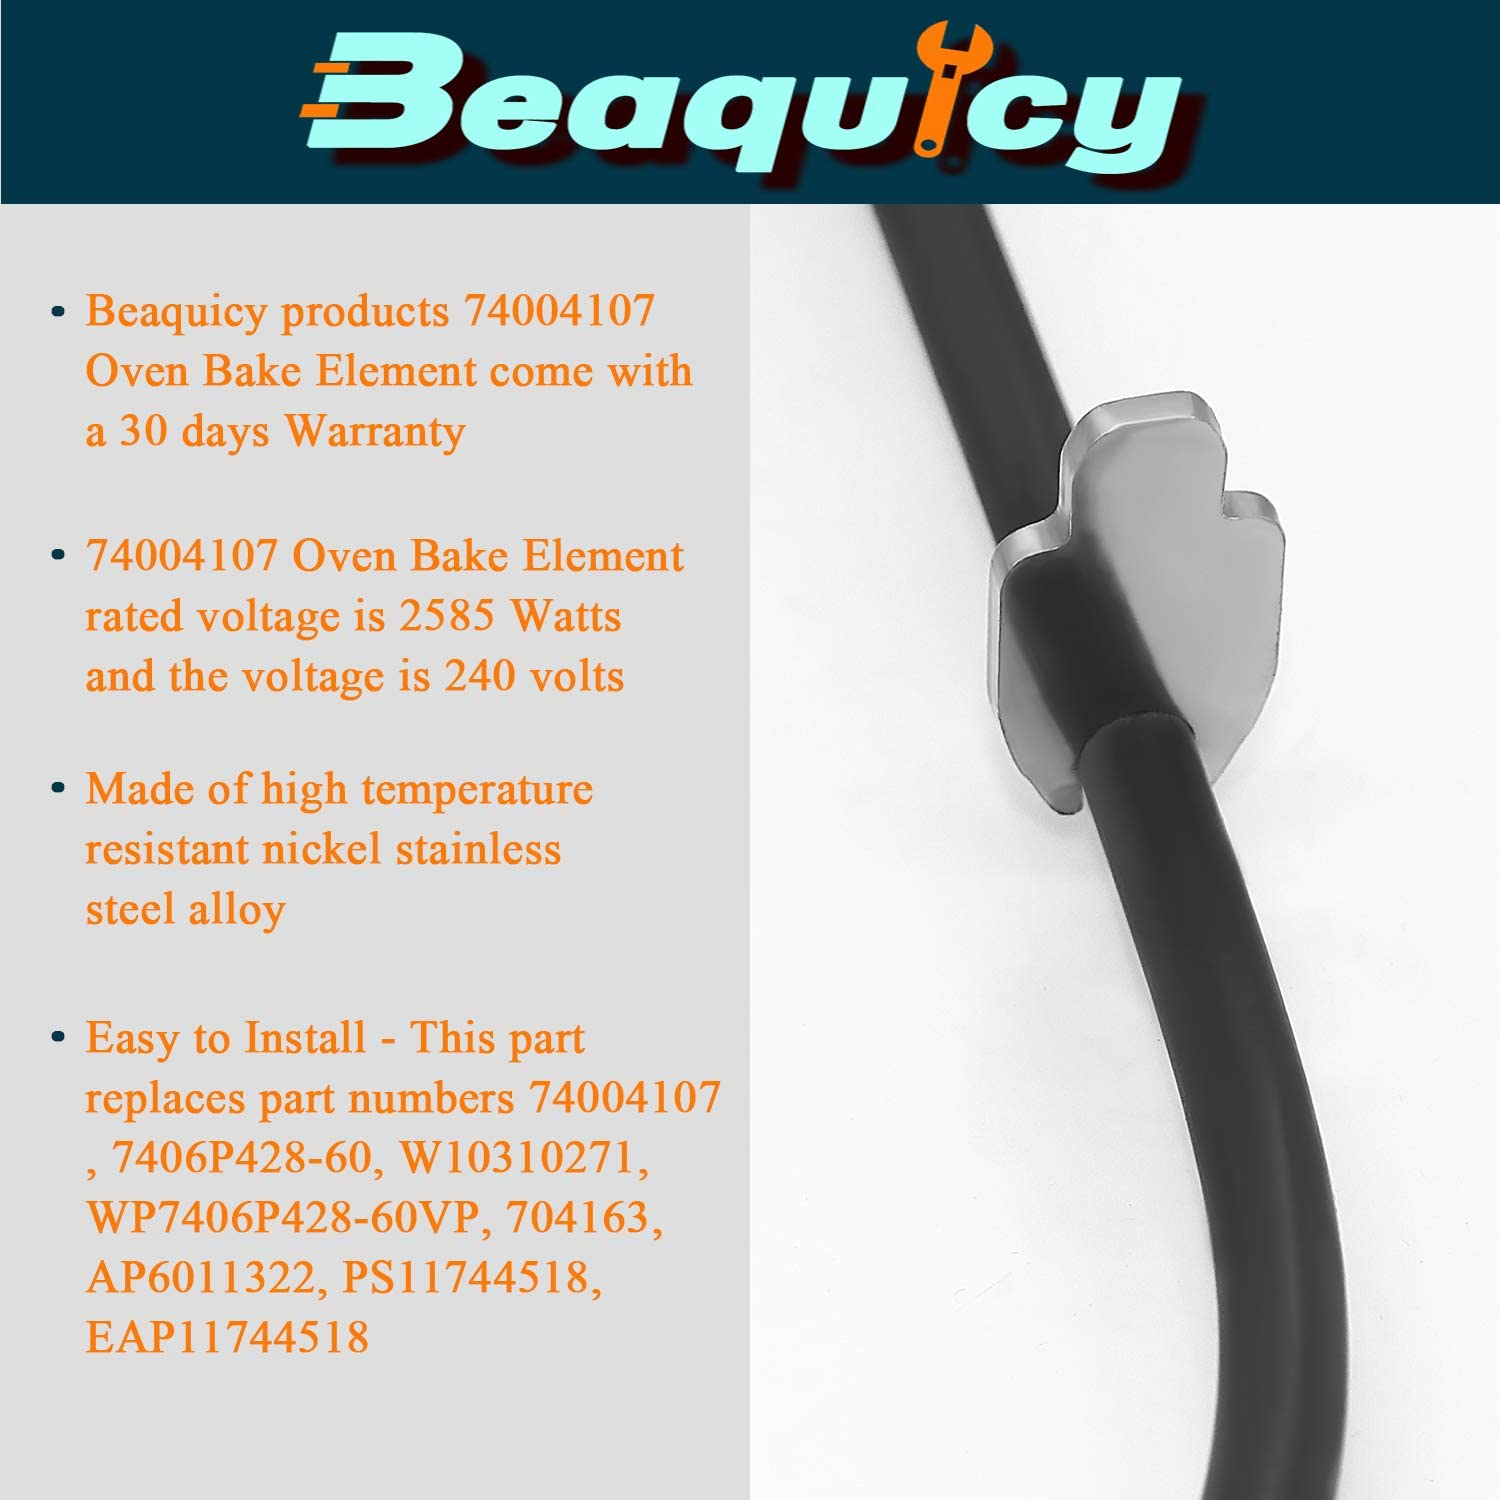 Beaquicy 74004107 Range Oven Bake Element Replacement for Kenmore Whirlpool Oven Replaces WP7406P428-60